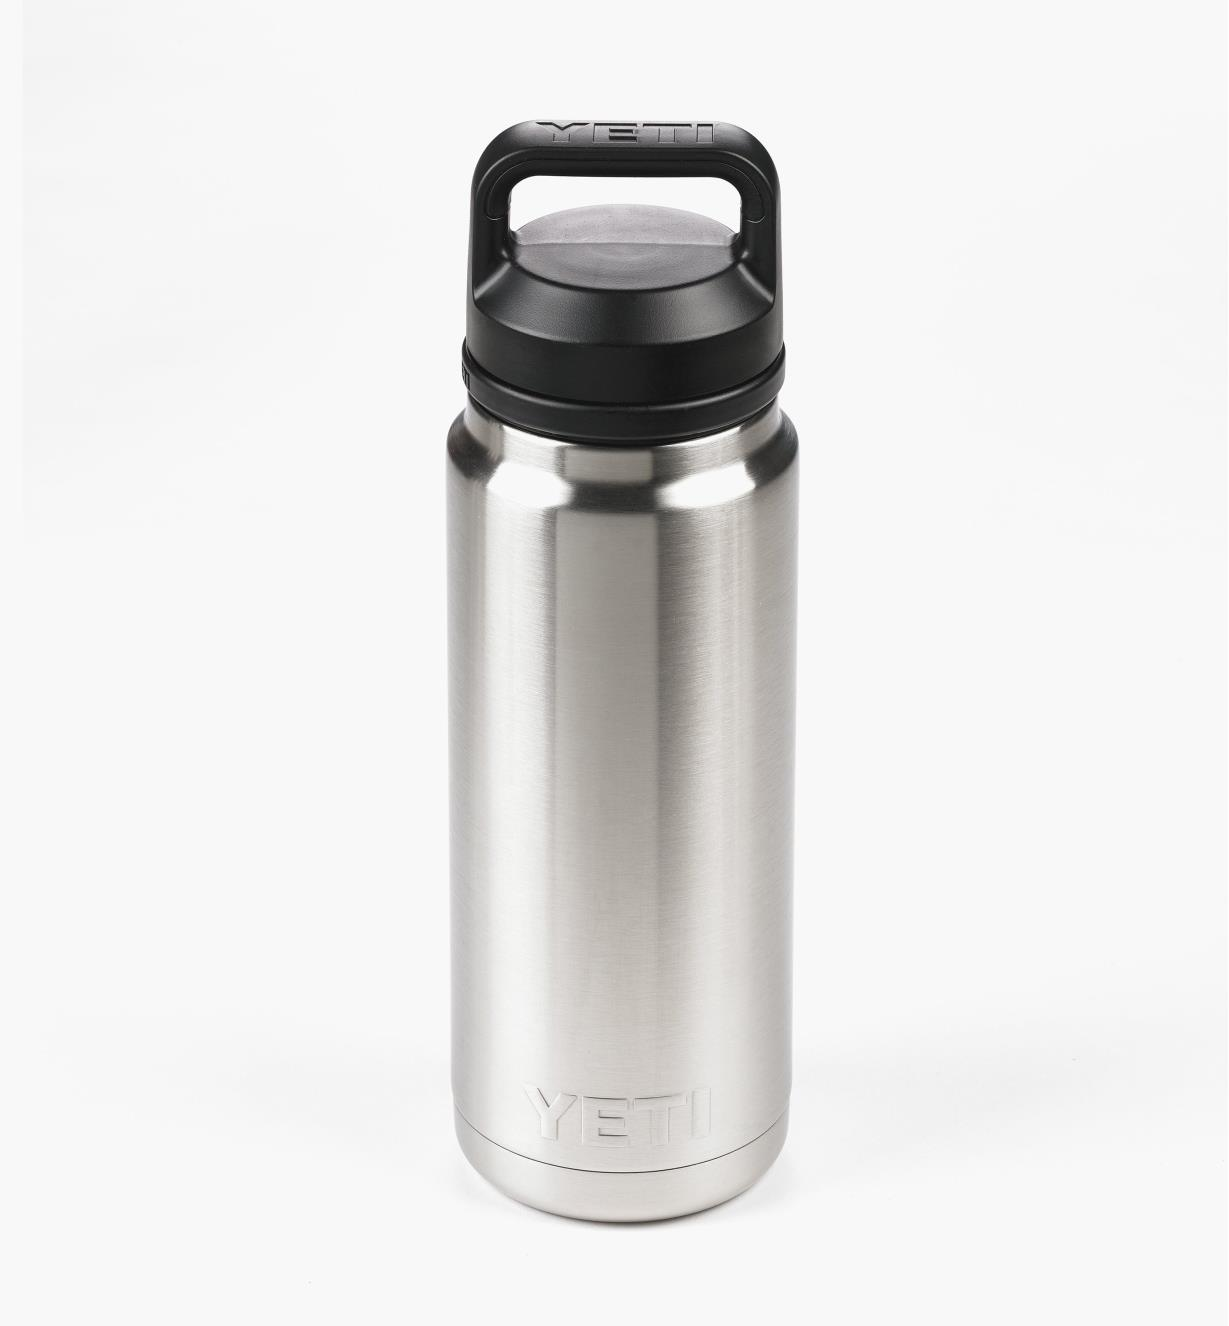 74K0061 - 26 oz Yeti Bottle, Stainless Steel